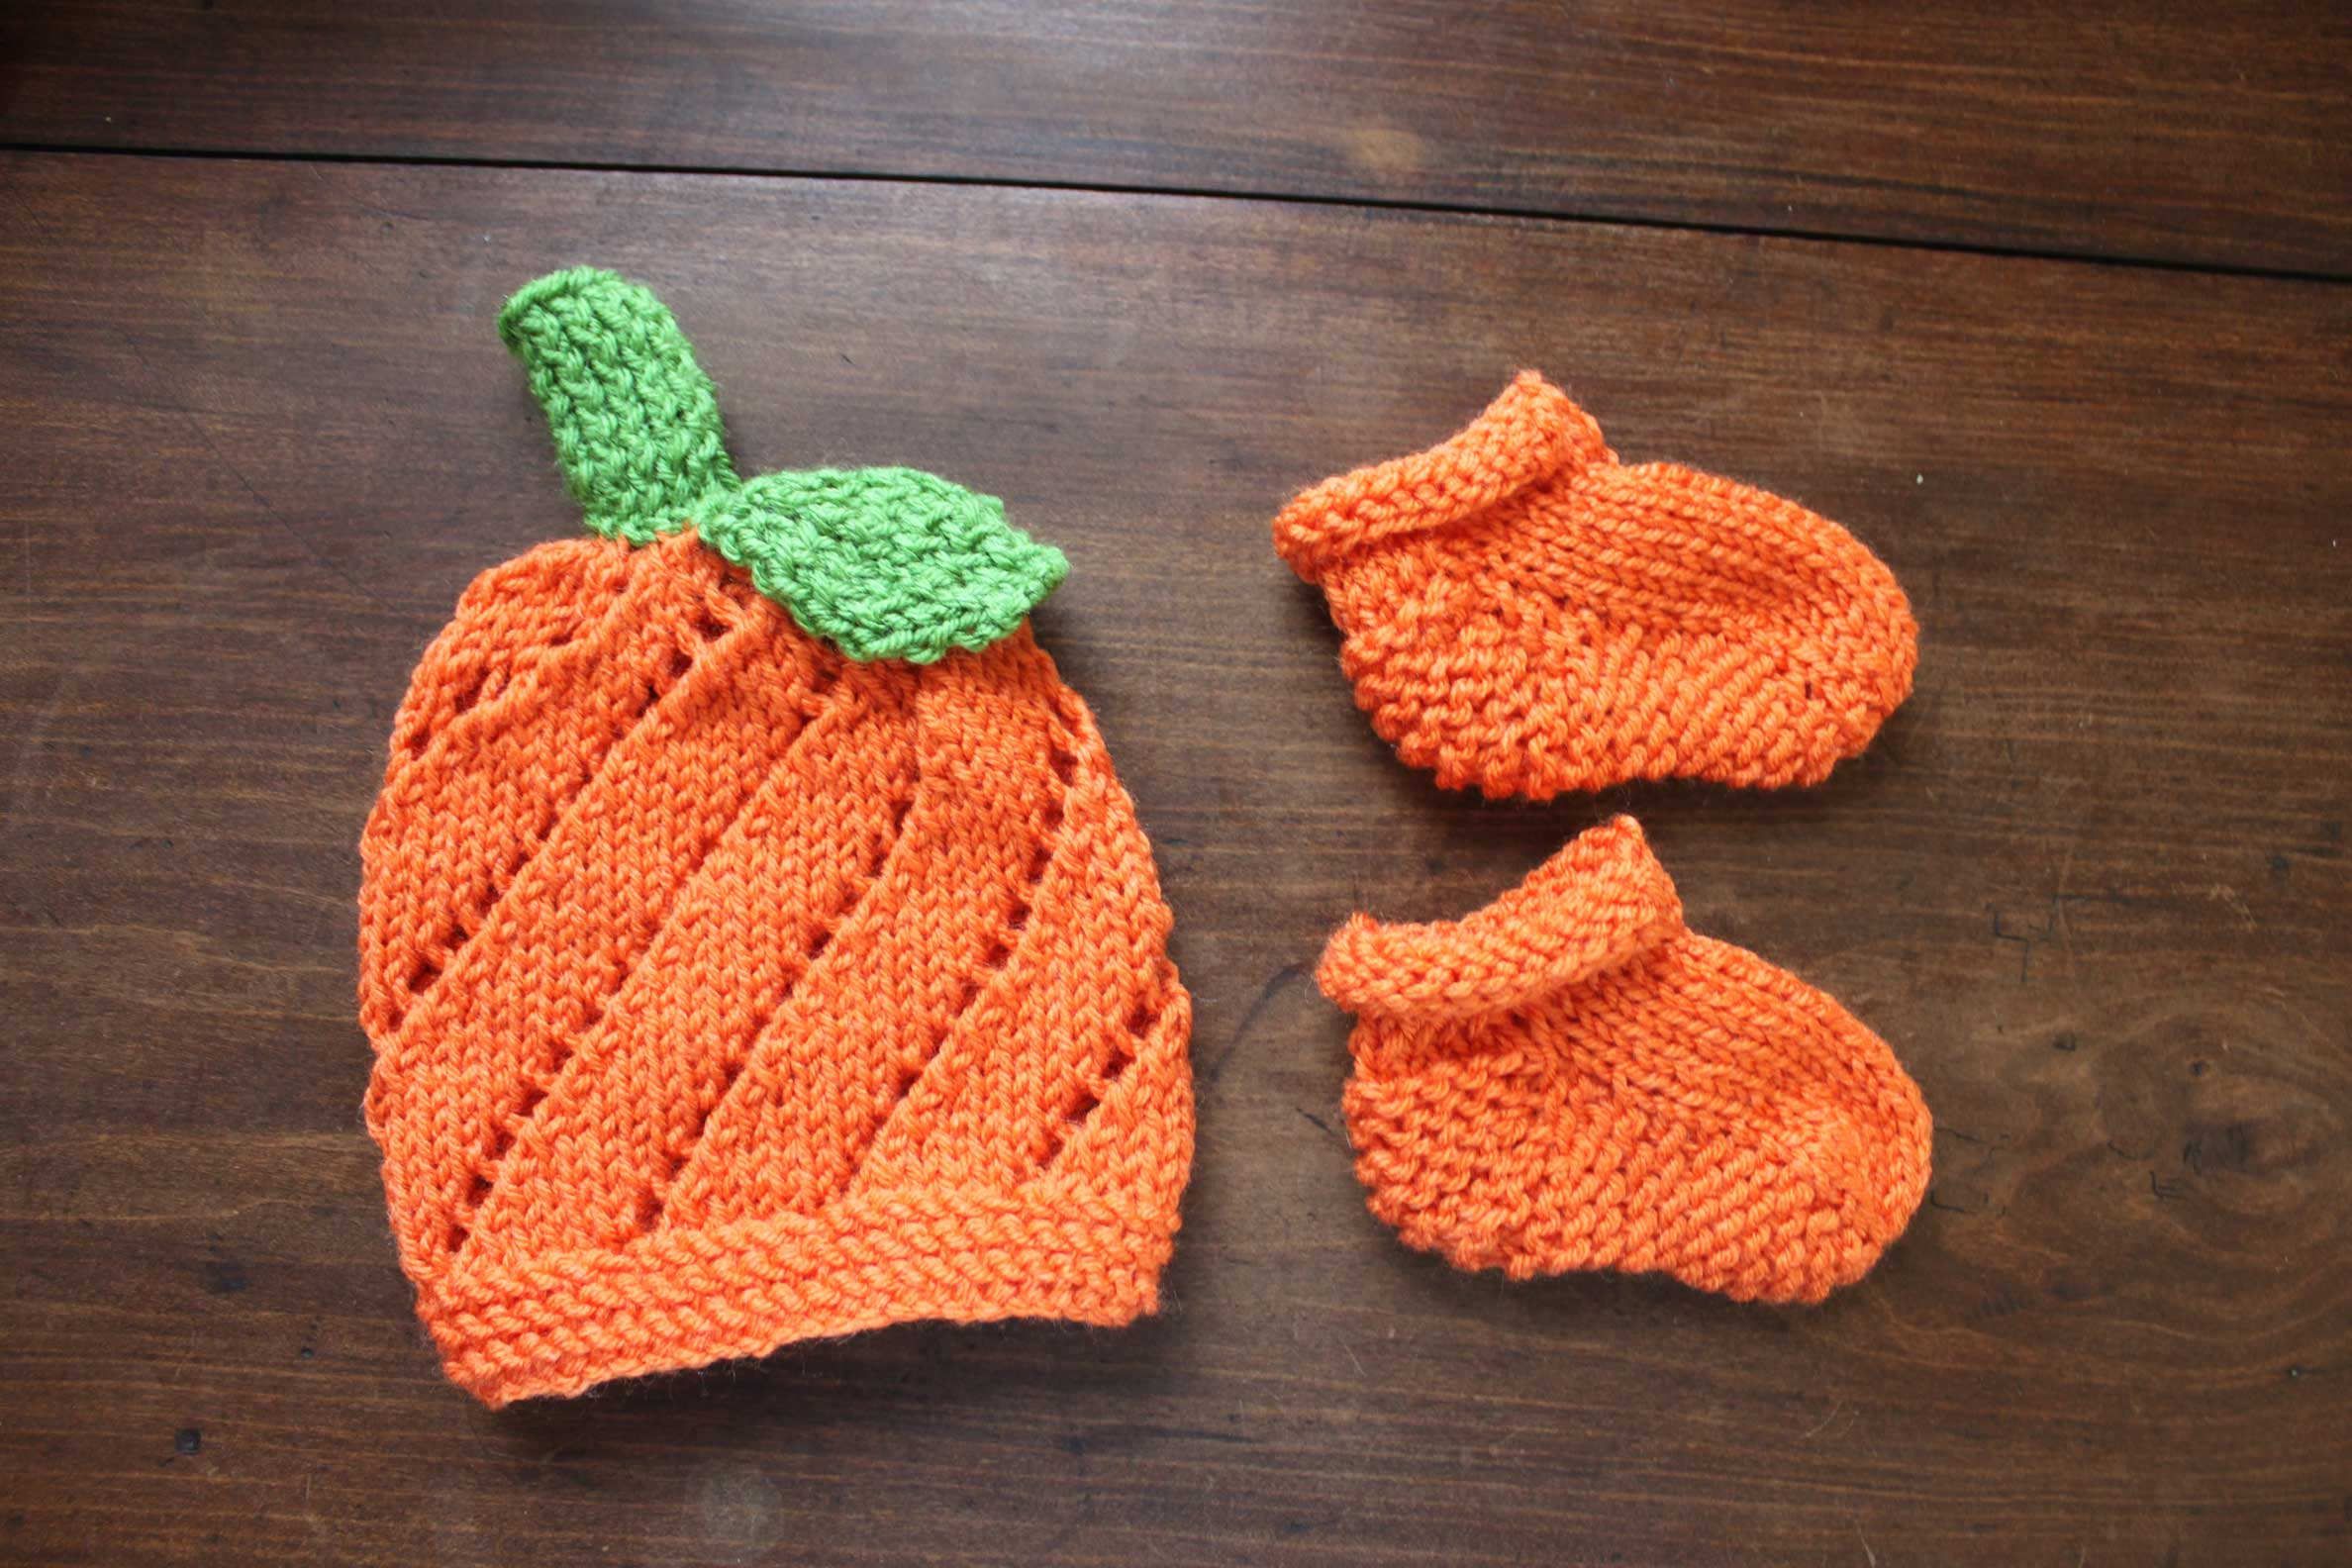 5532043ae0b Some yarn projects for Baby